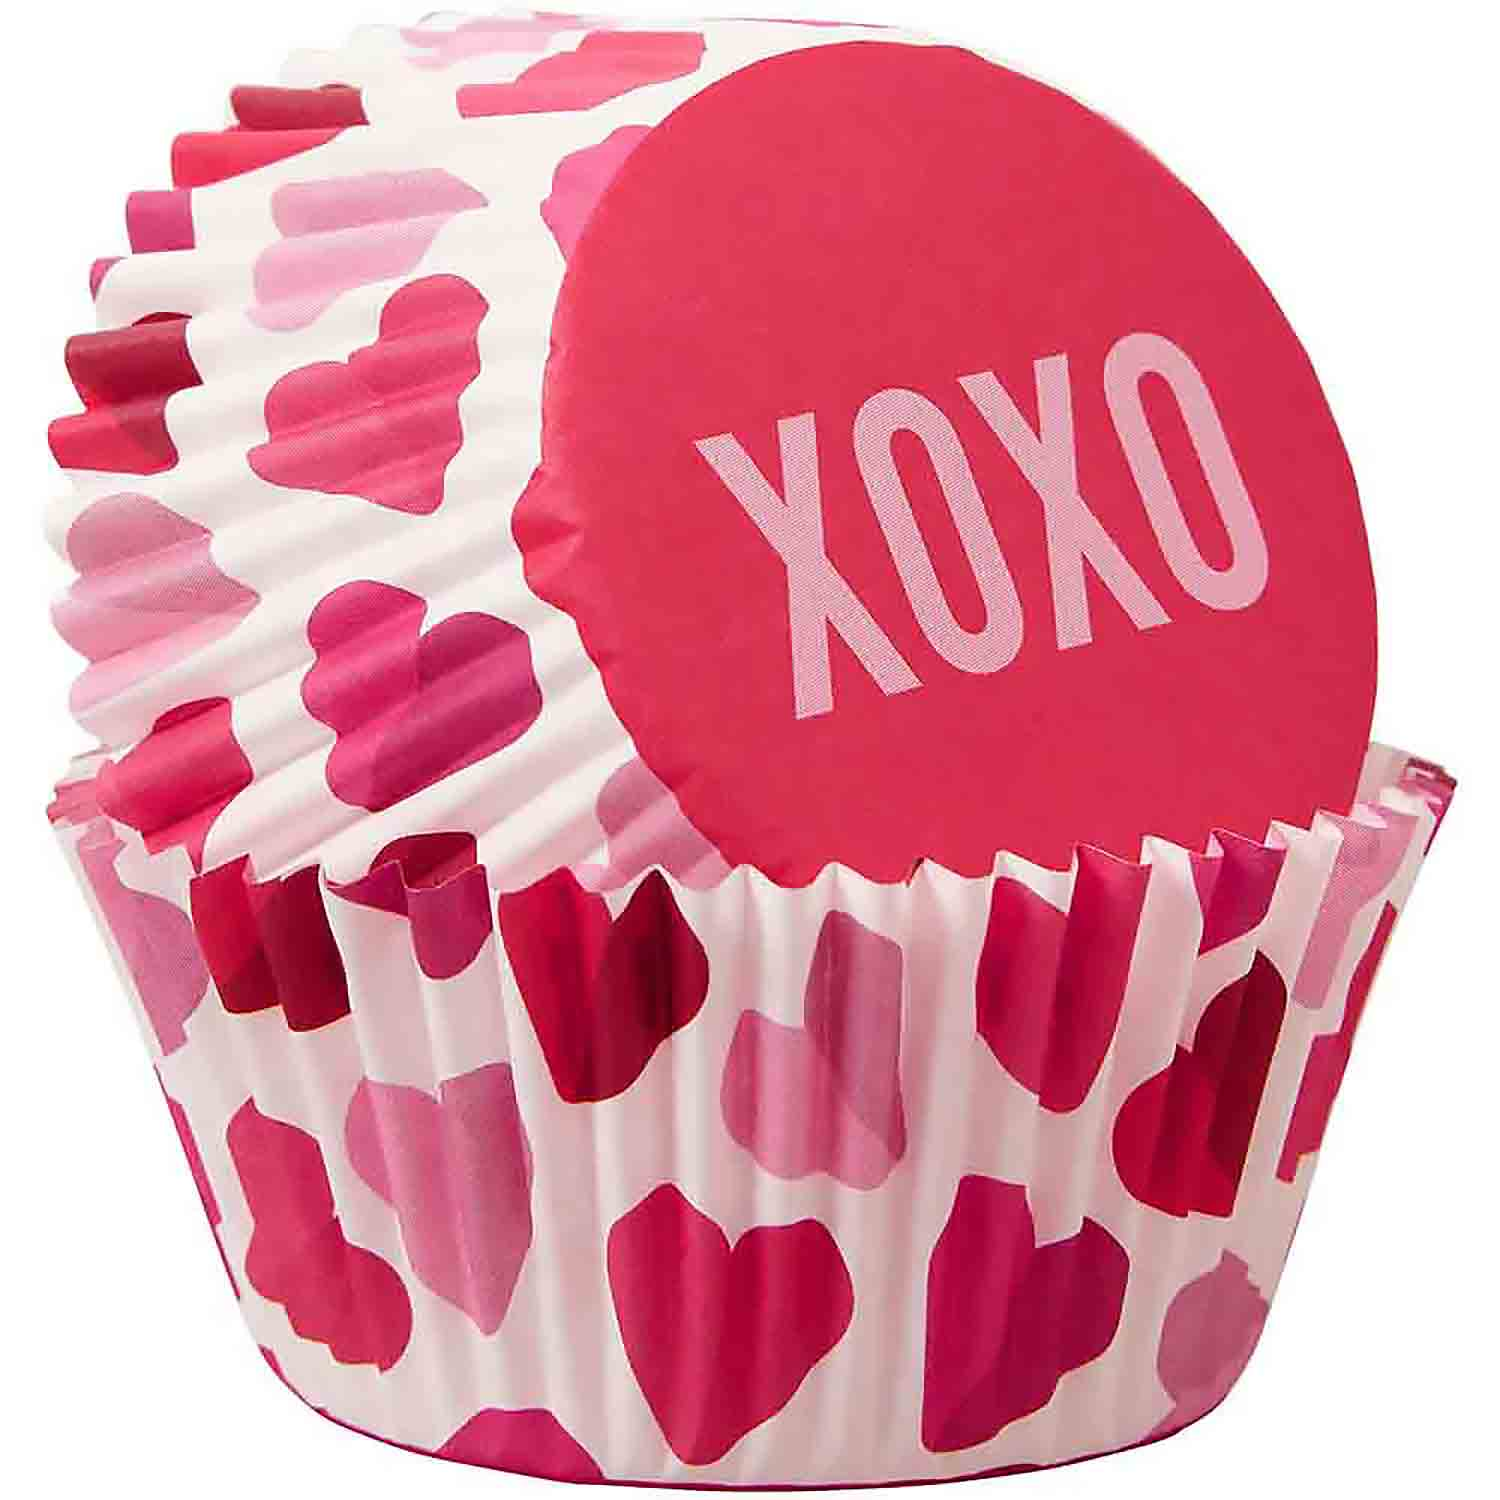 Scattered XOXO Standard Baking Cups